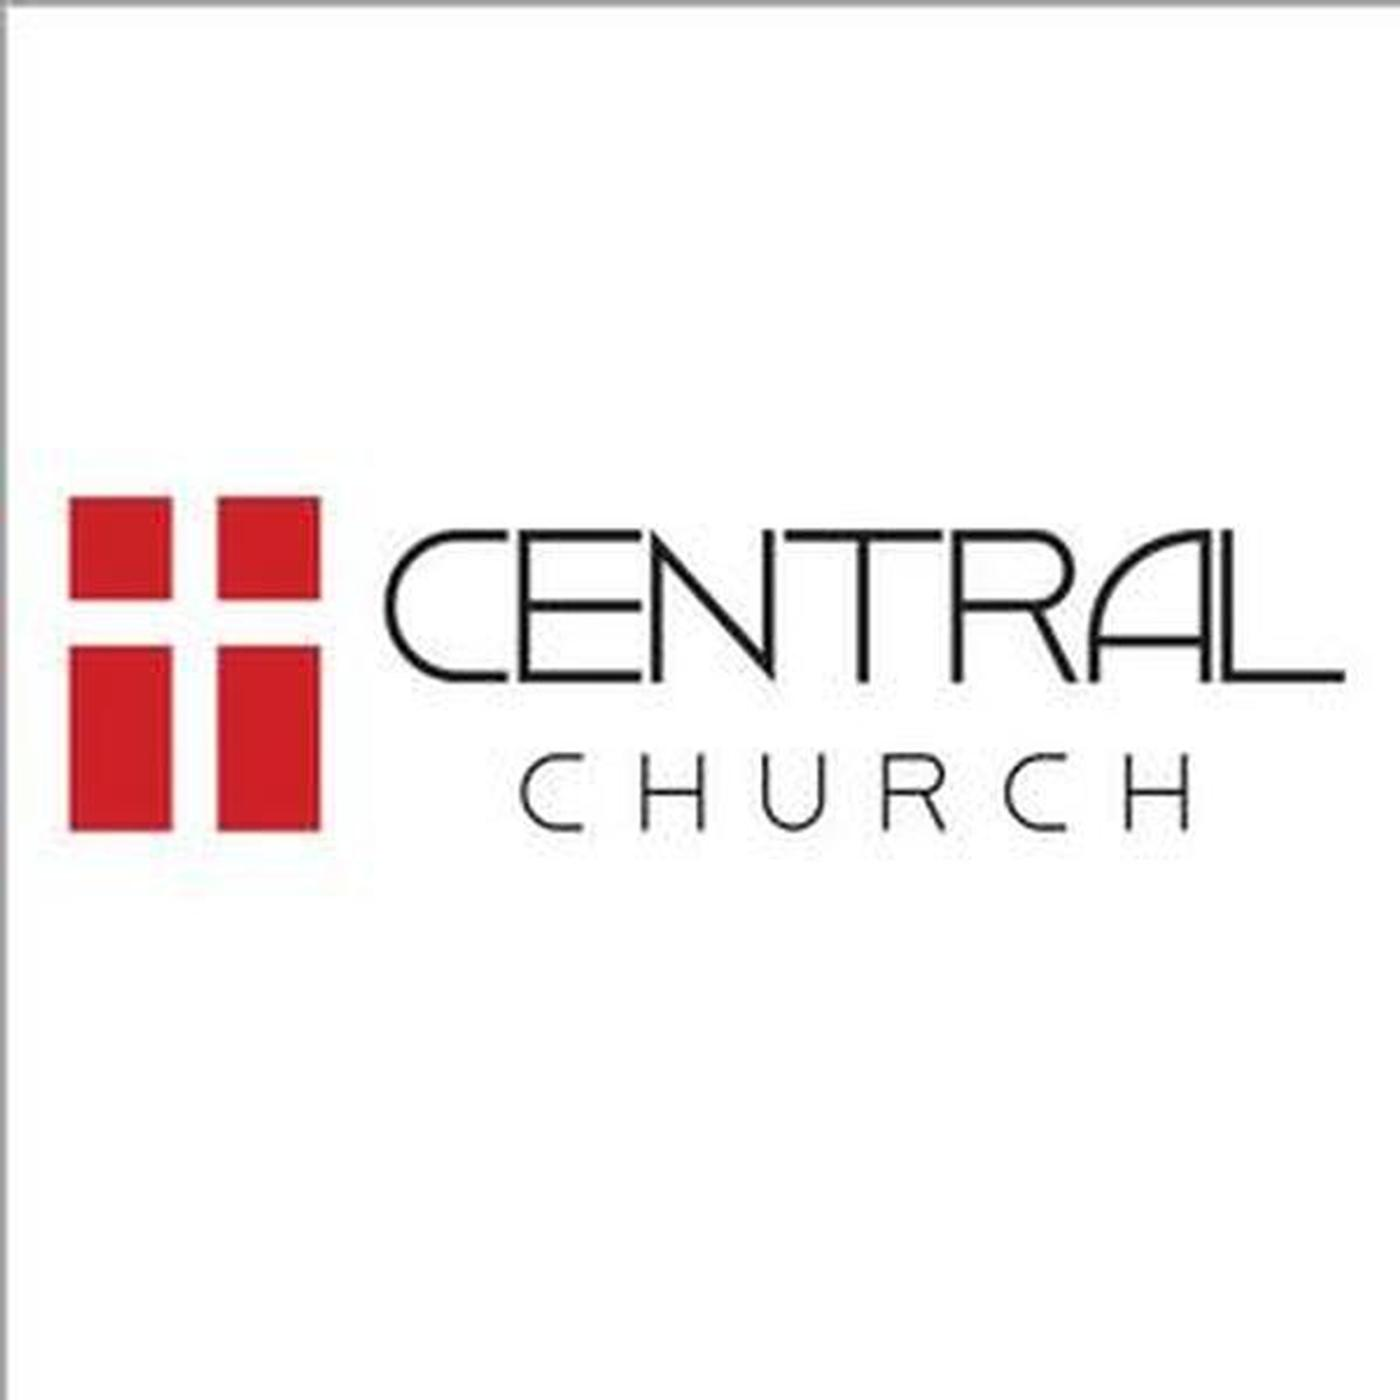 Central Church K-W Audio Messages